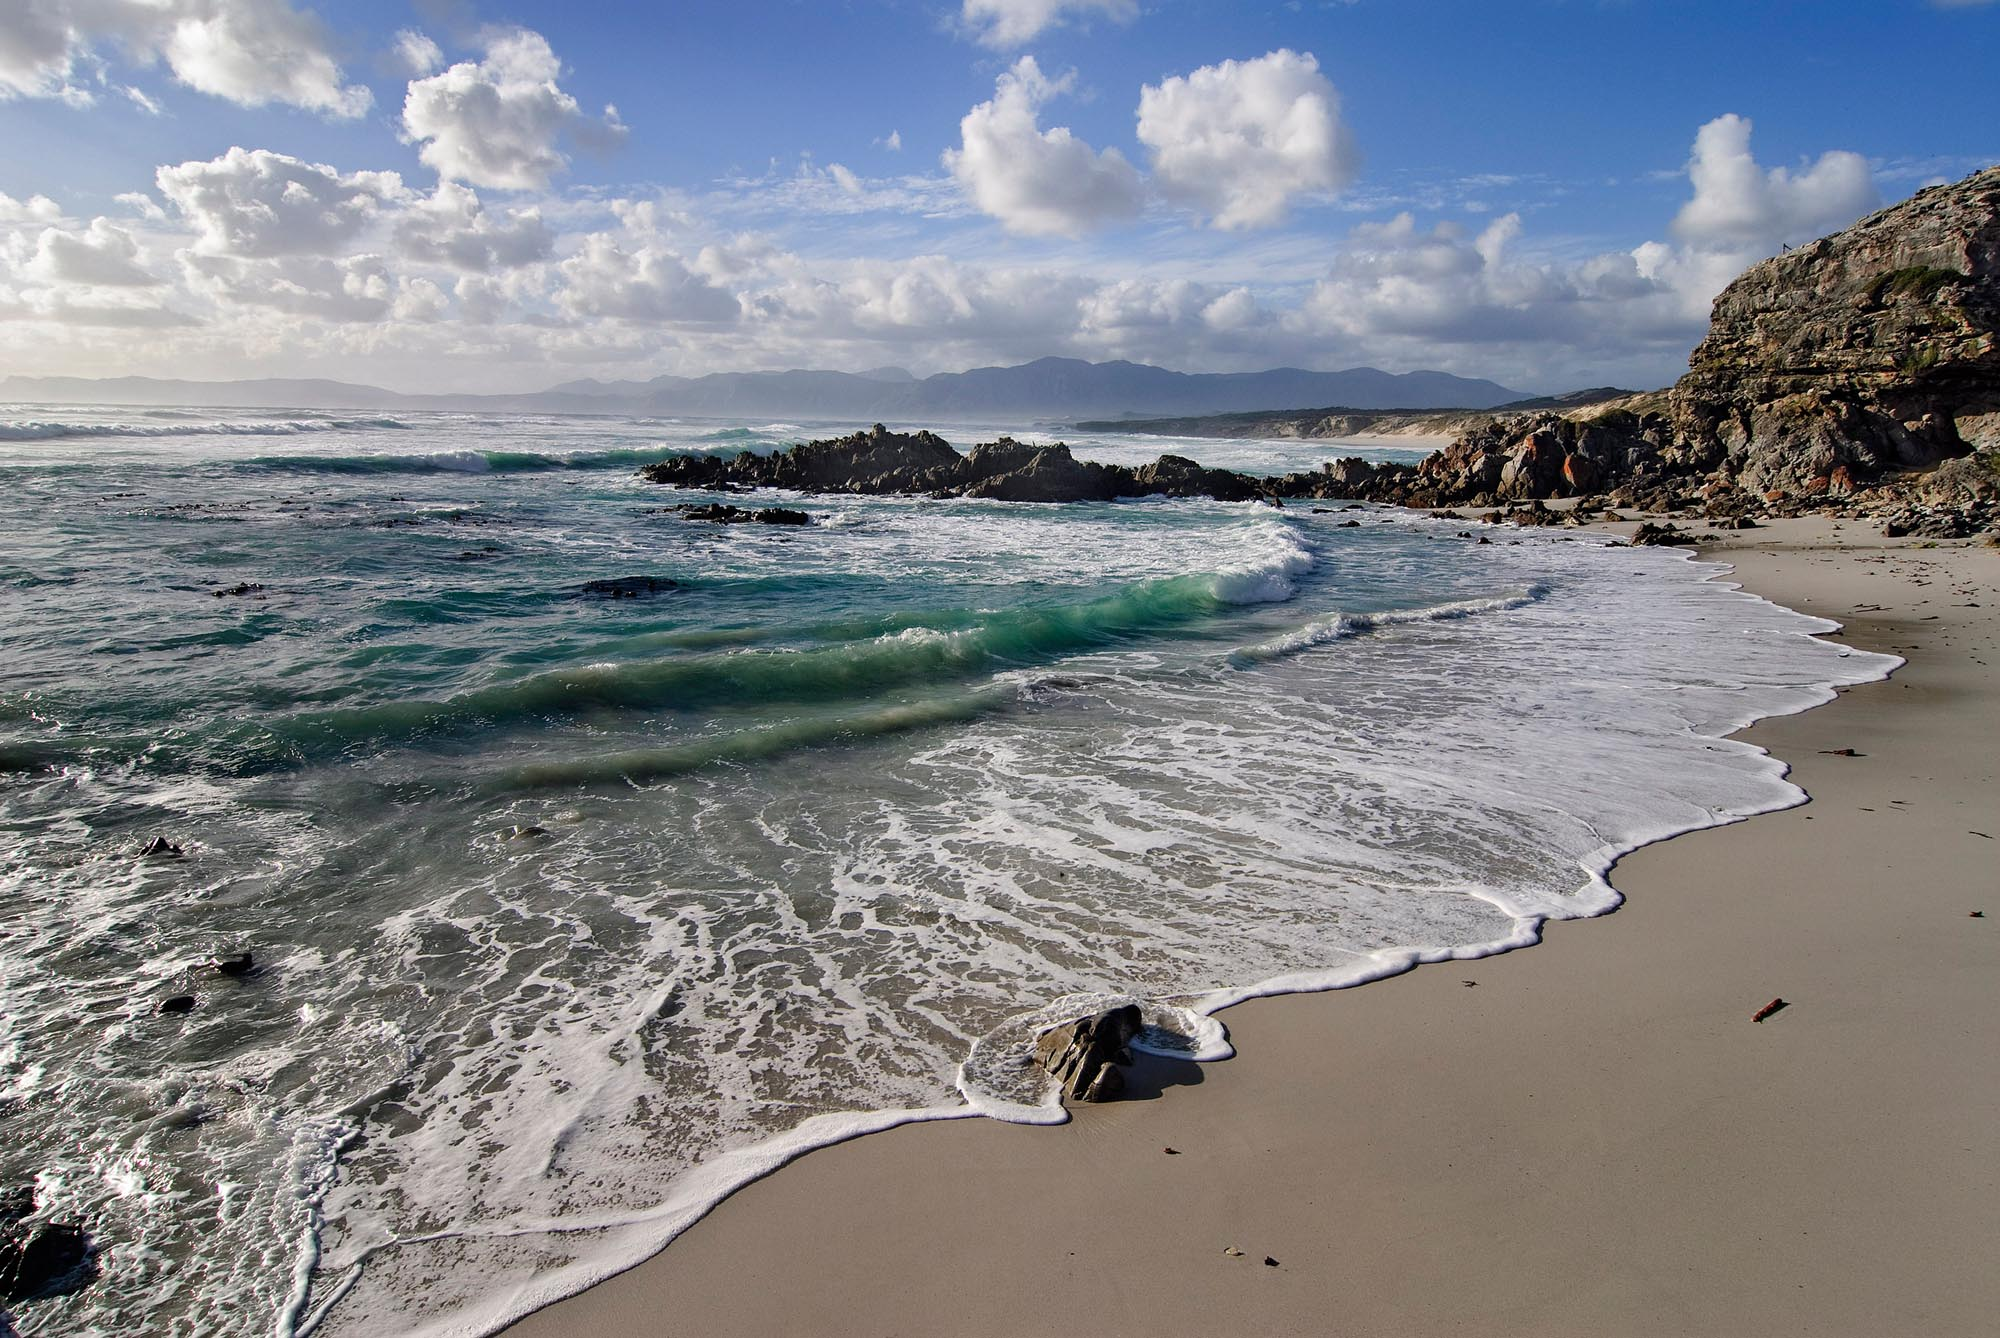 South Africa - Grootbos Beach